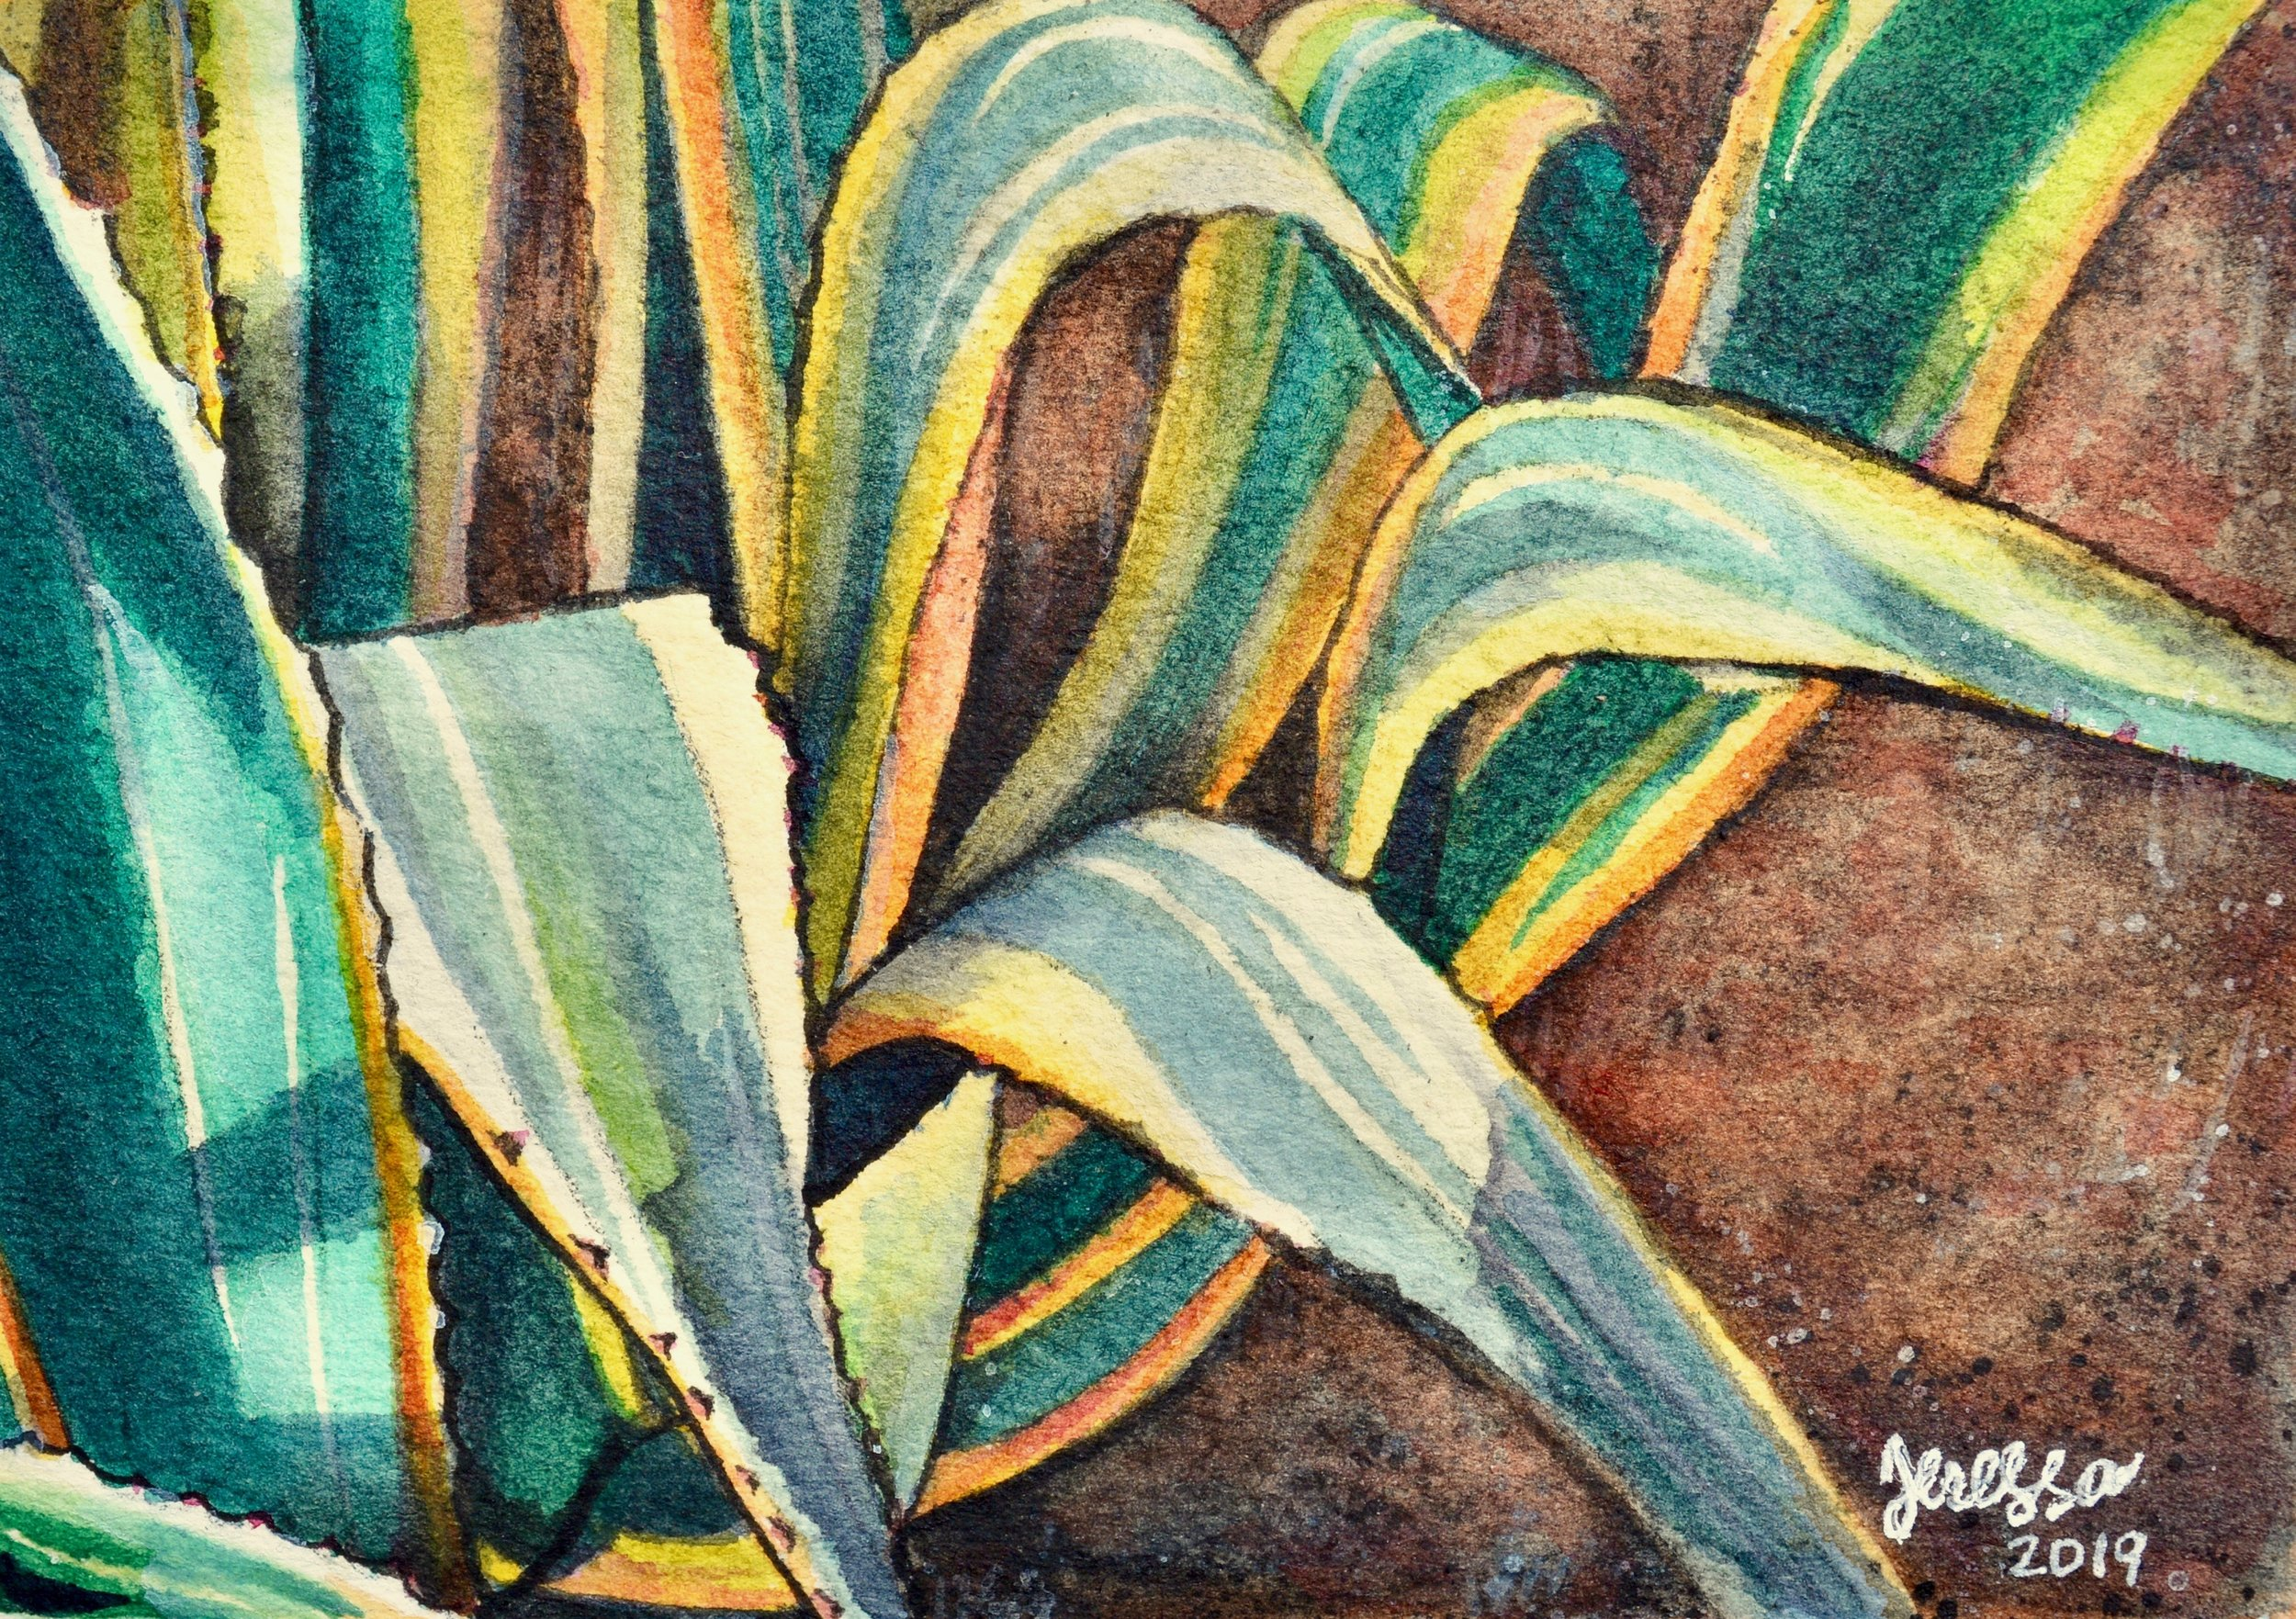 """White-Striped Agave Study""  For sale as of this blog posting  5x3.5"""